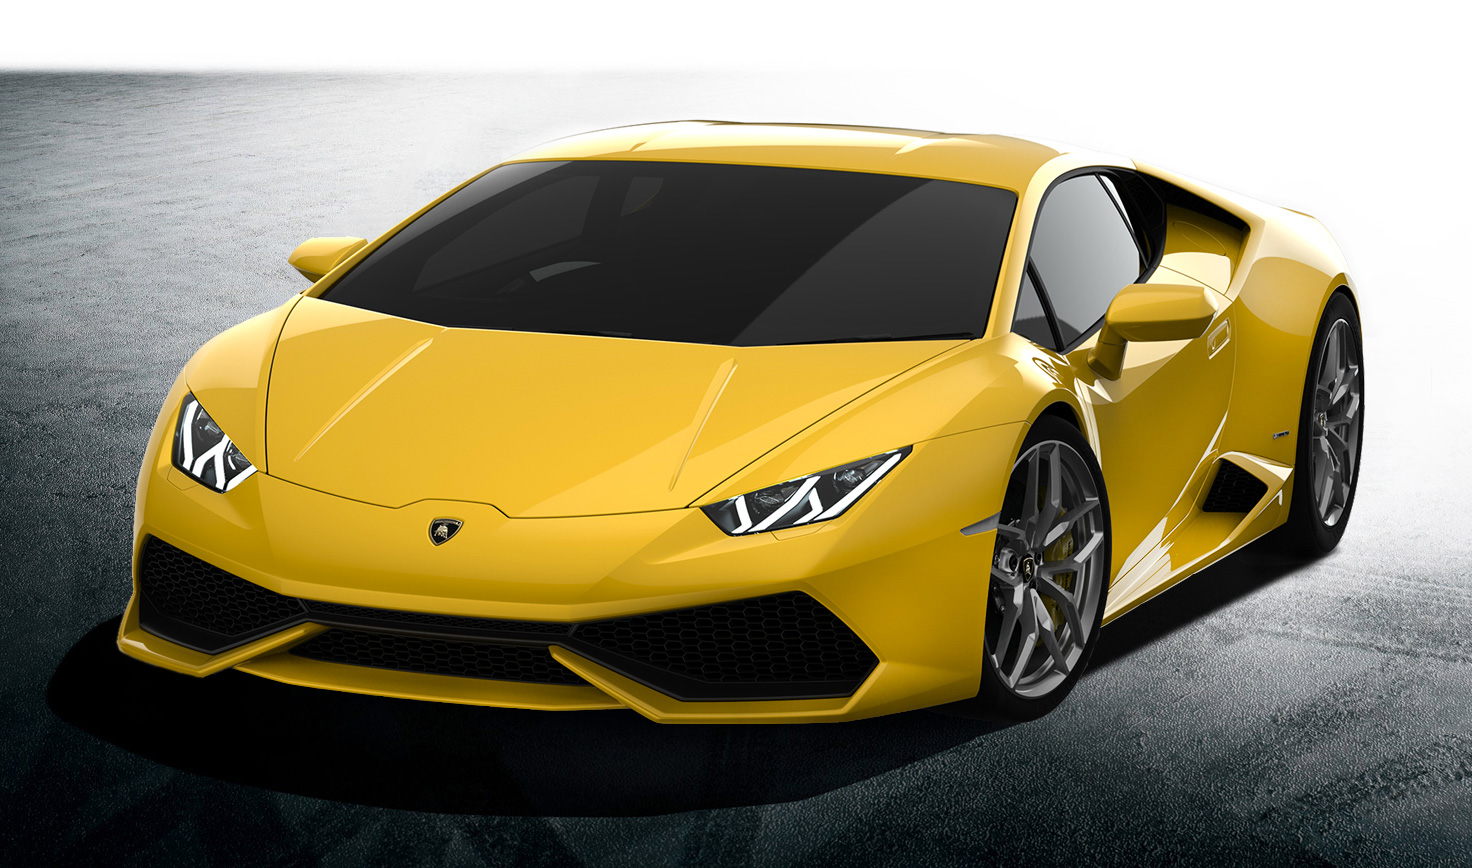 lamborghini huracan vs lamborghini aventador head to head. Black Bedroom Furniture Sets. Home Design Ideas